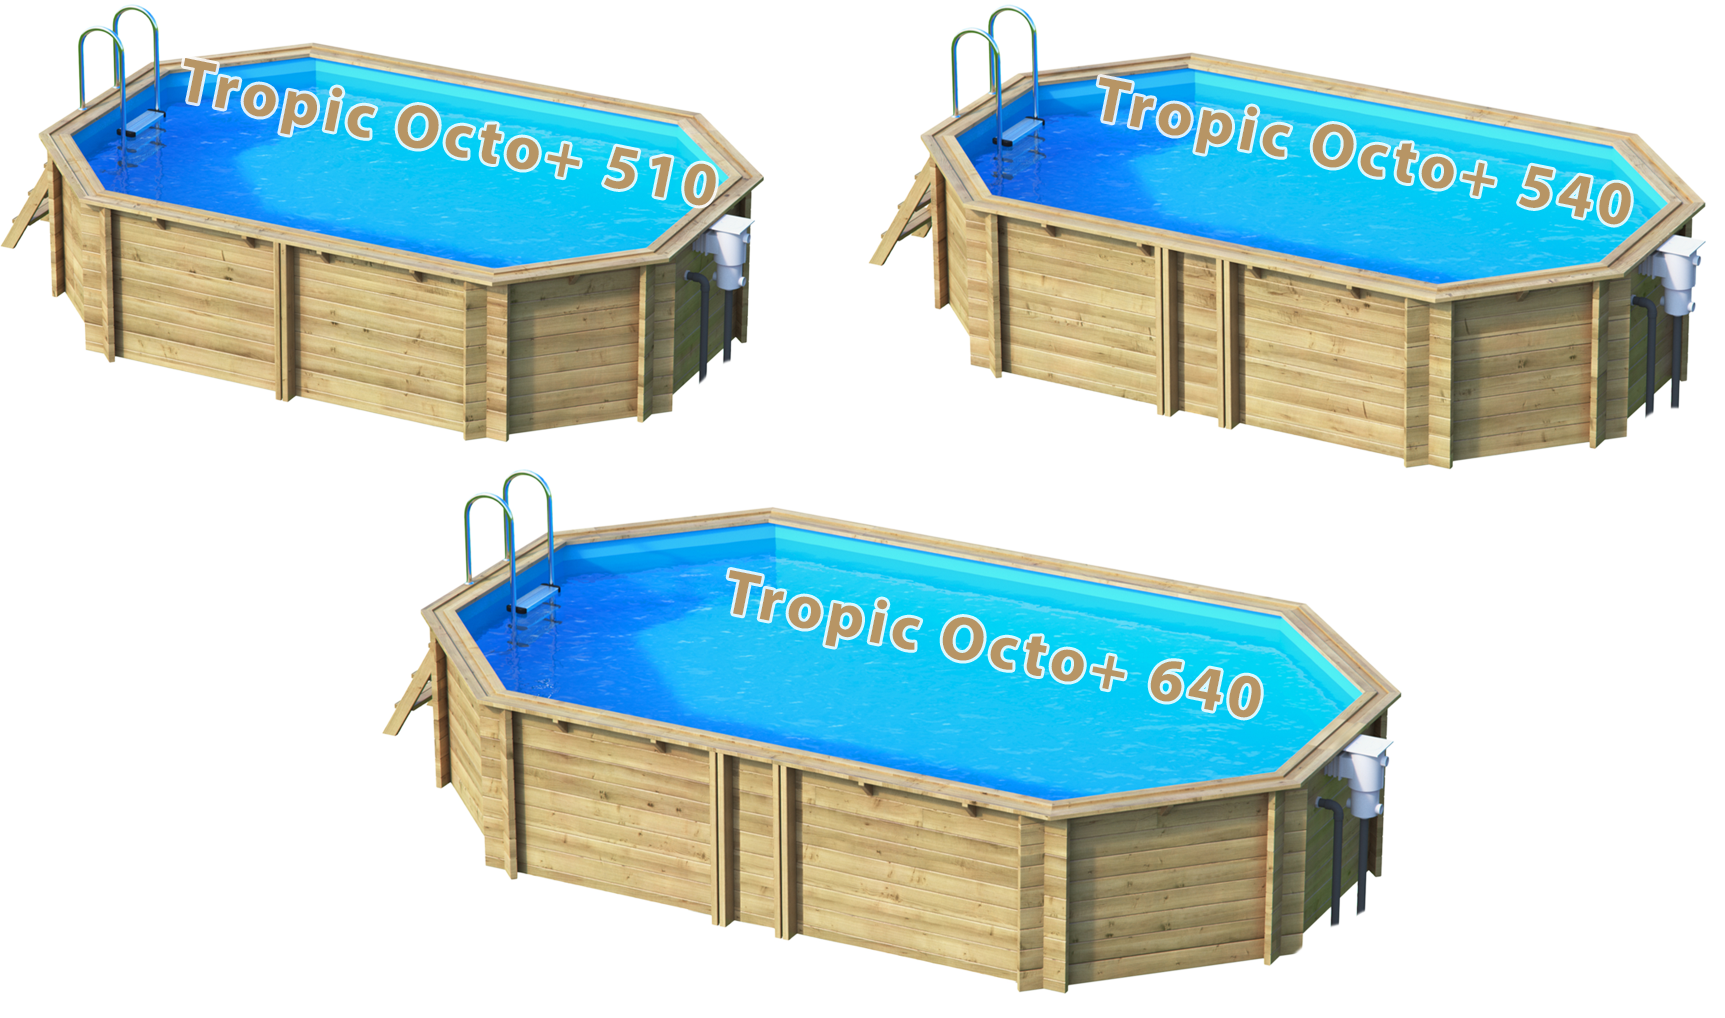 Pool aus massivholz tropic octo sunday pools onlineshop for Aufstellpool aus holz